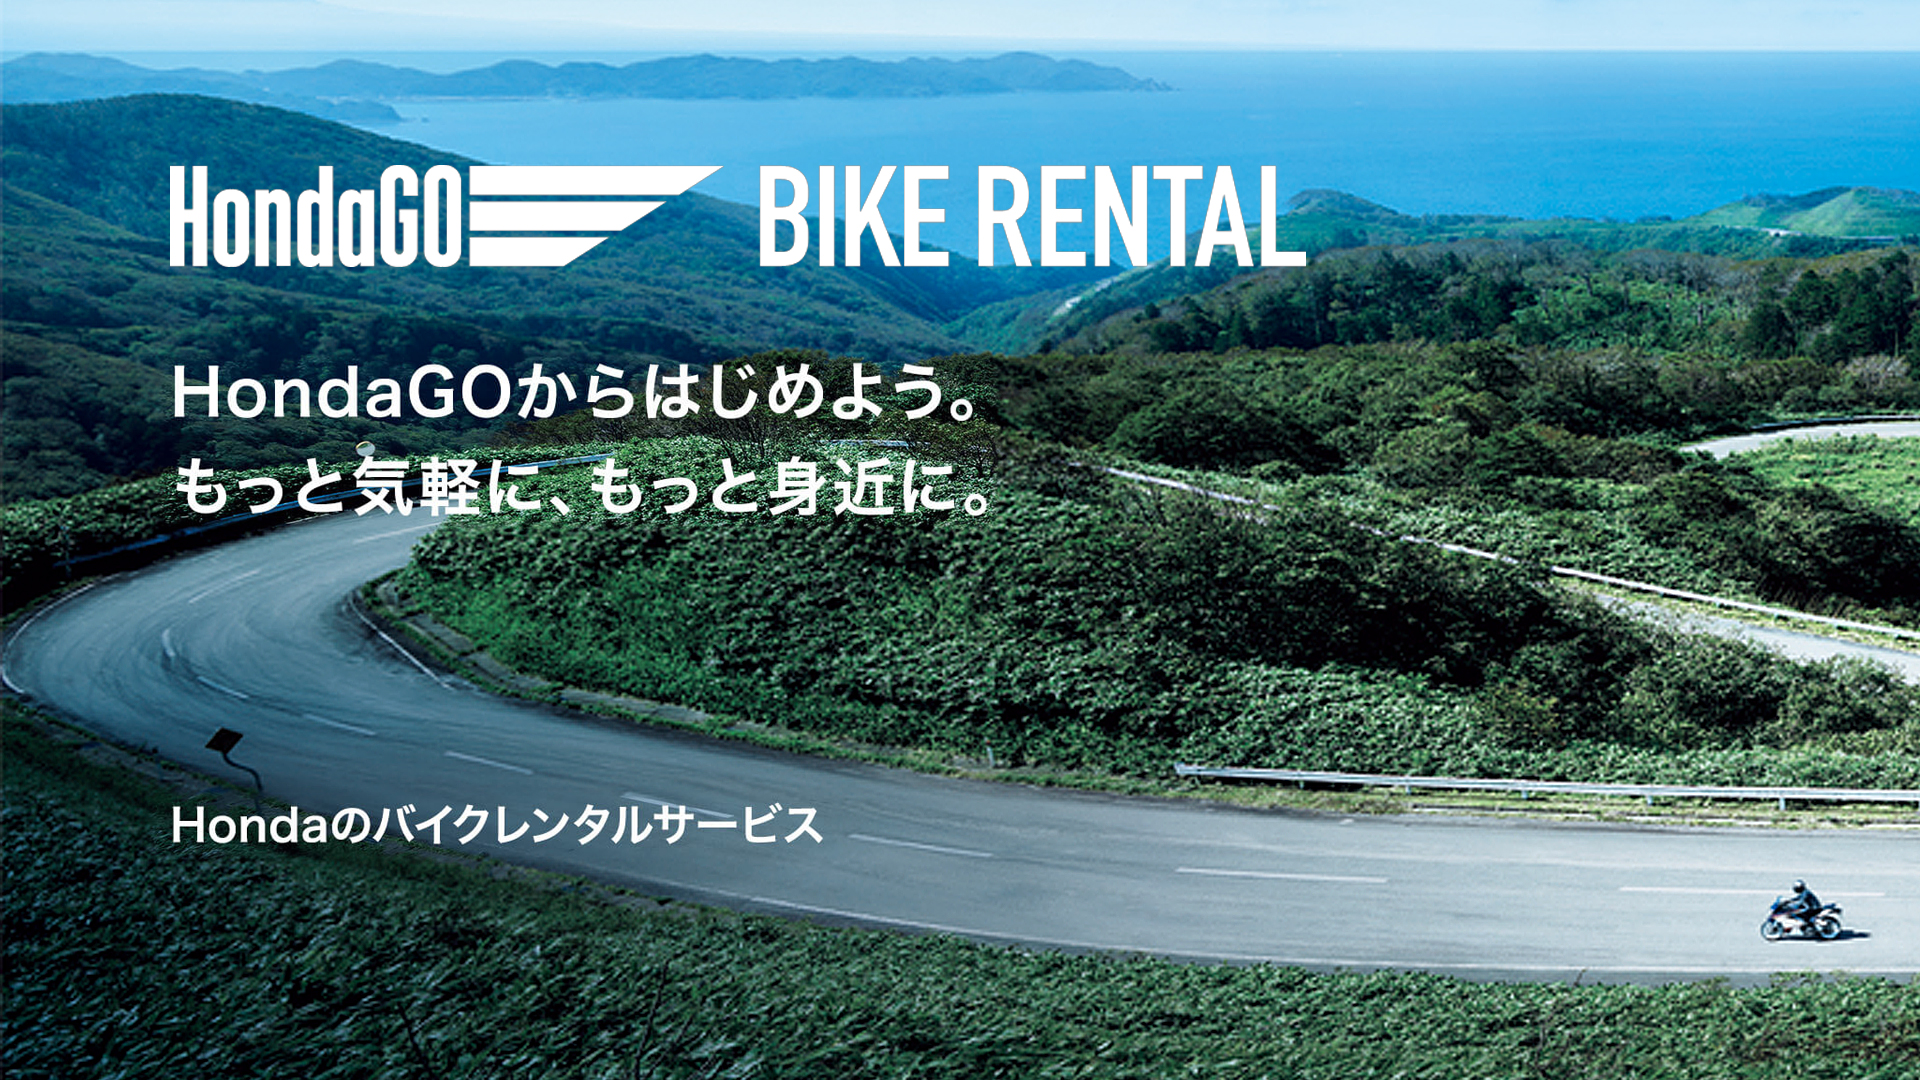 Honda GO BIKE RENTAL